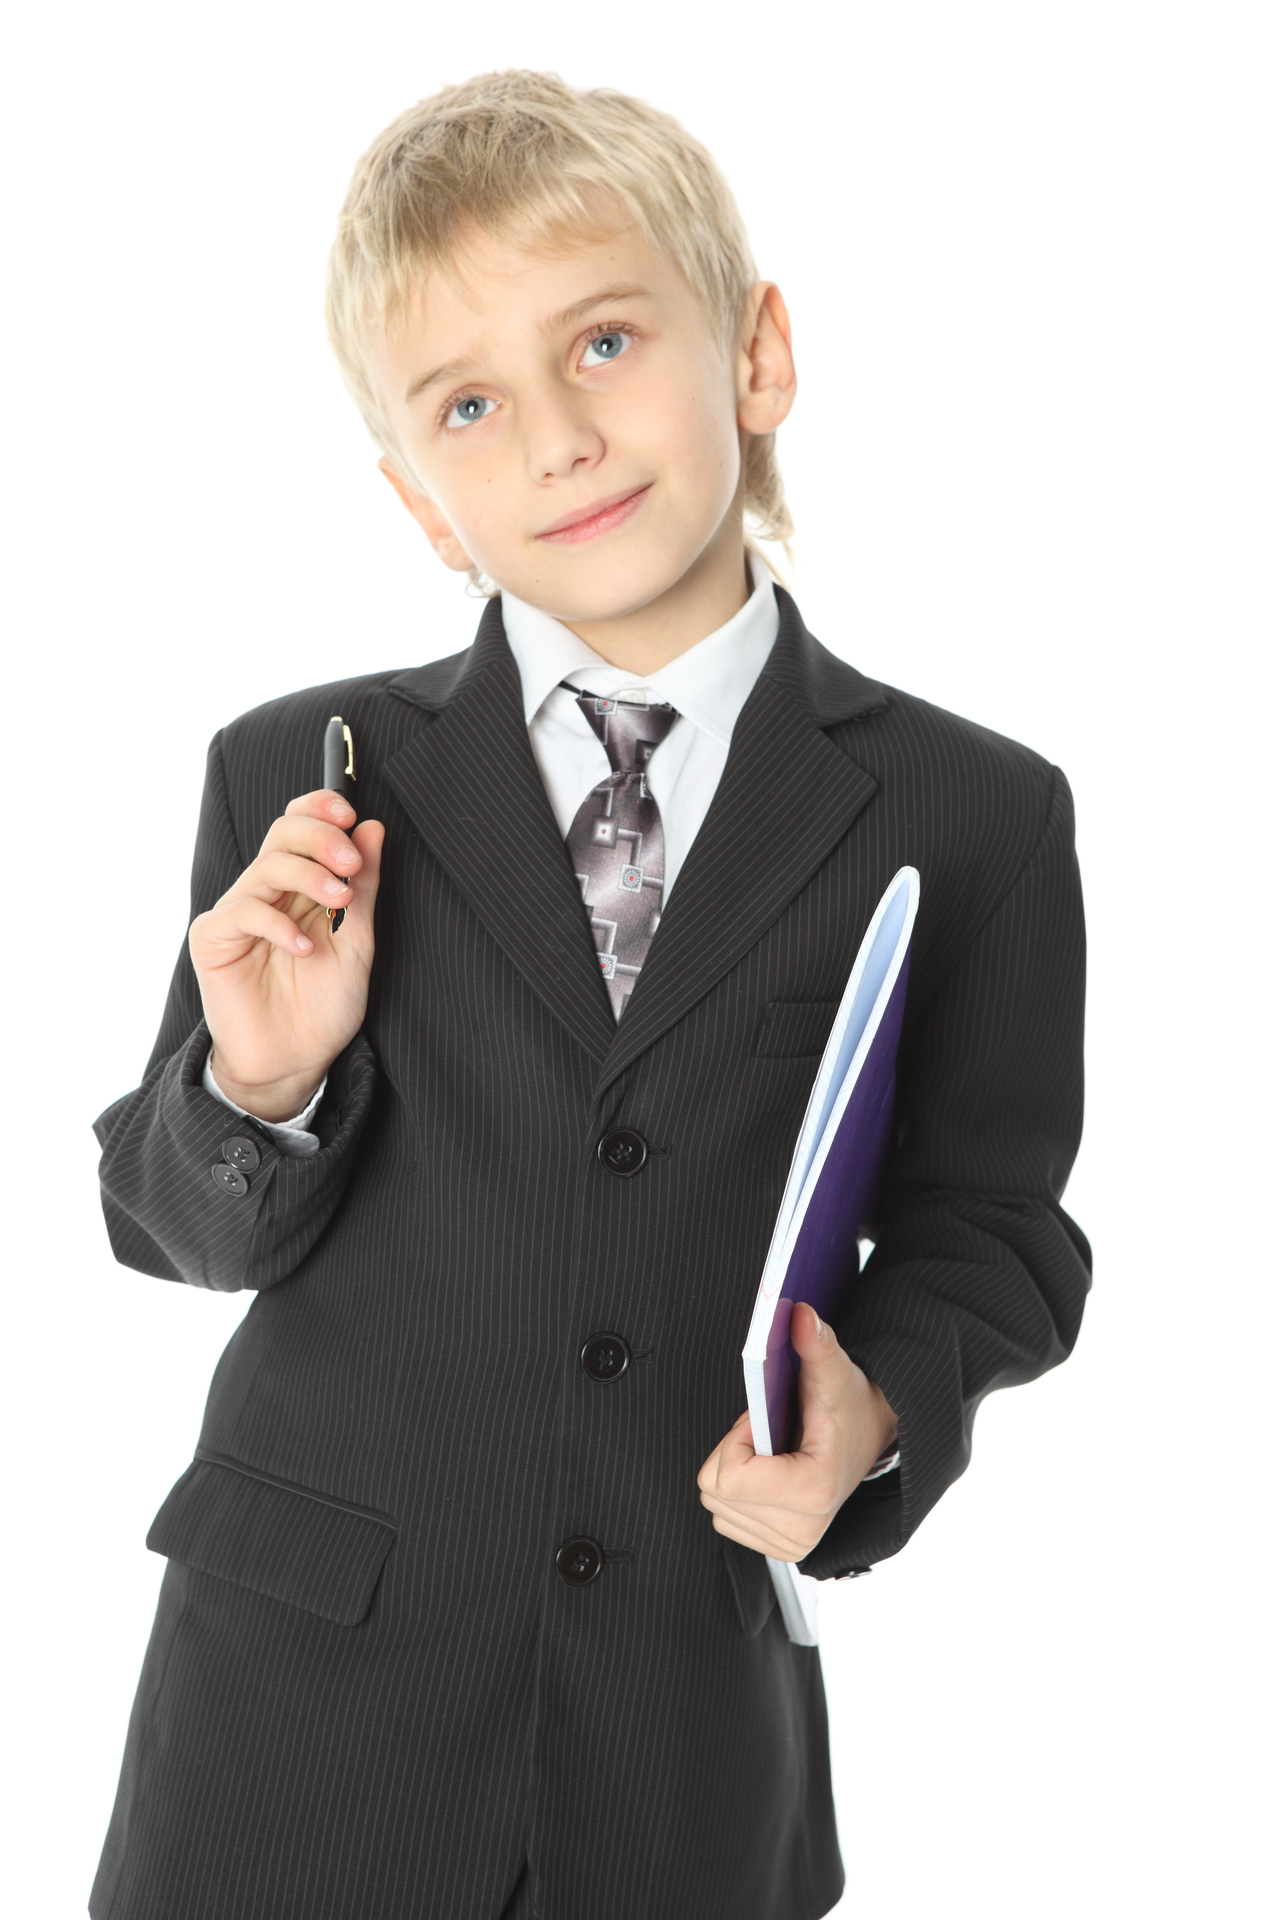 school uniforms term papers Check out our top free essays on school uniform cons to help you write your own essay.